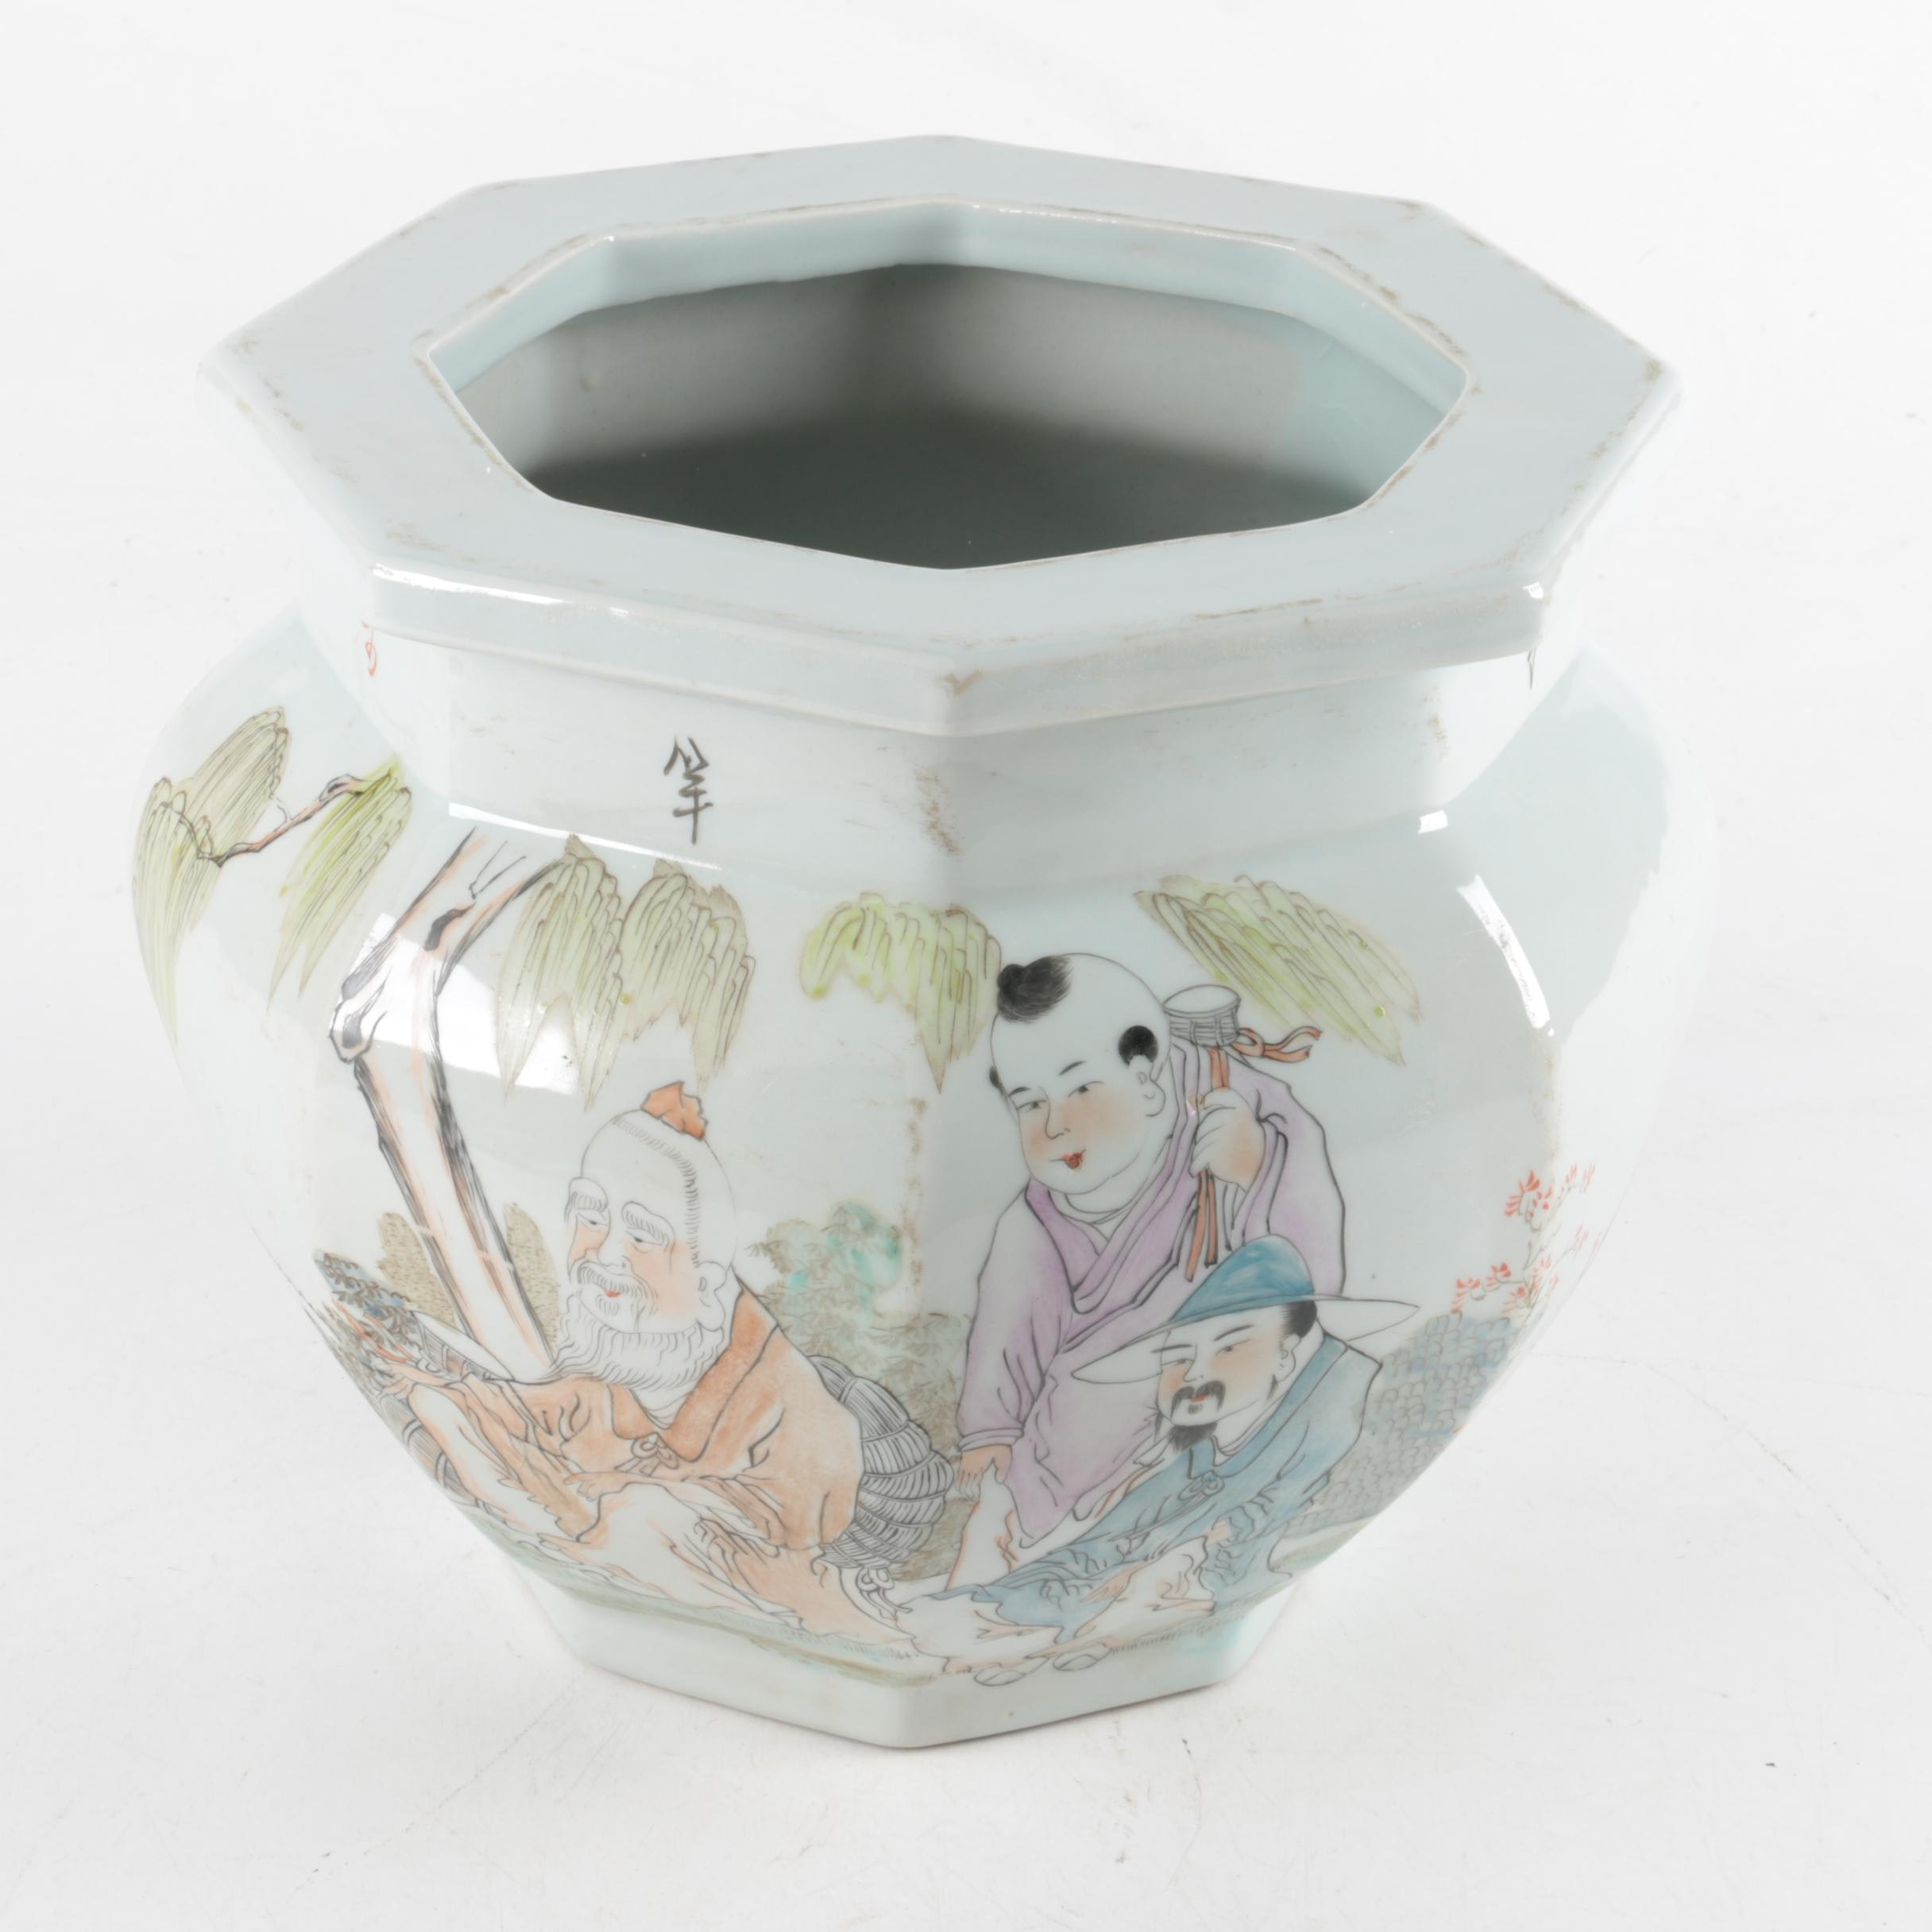 Vintage Chinese Hand-Decorated White Porcelain Octagonal Shape Planter